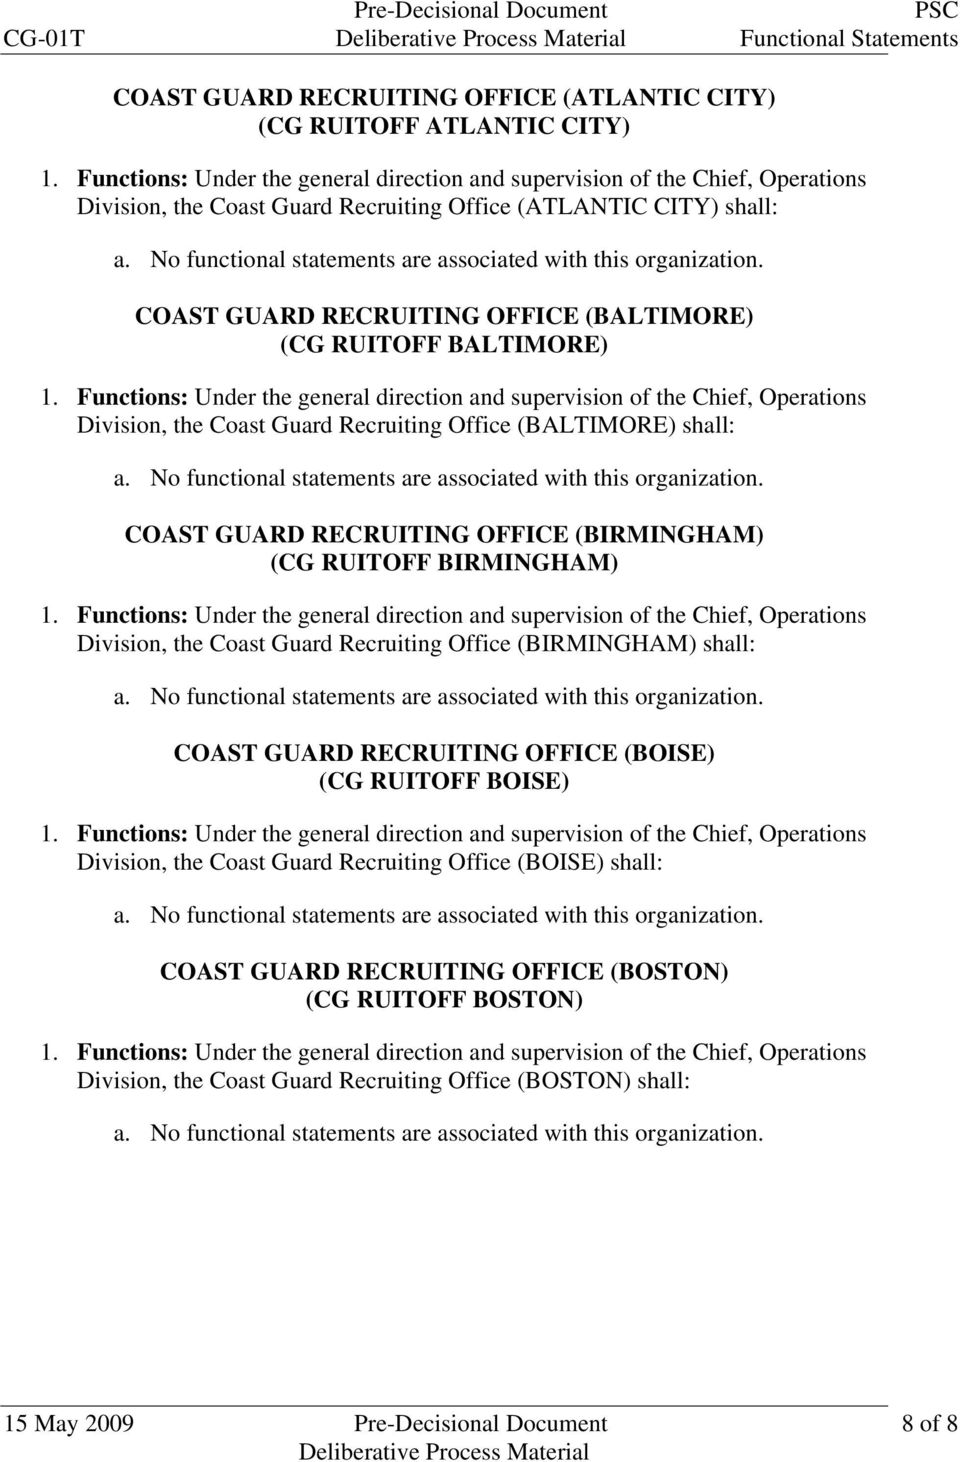 BIRMINGHAM) Division, the Coast Guard Recruiting Office (BIRMINGHAM) shall: COAST GUARD RECRUITING OFFICE (BOISE) (CG RUITOFF BOISE) Division, the Coast Guard Recruiting Office